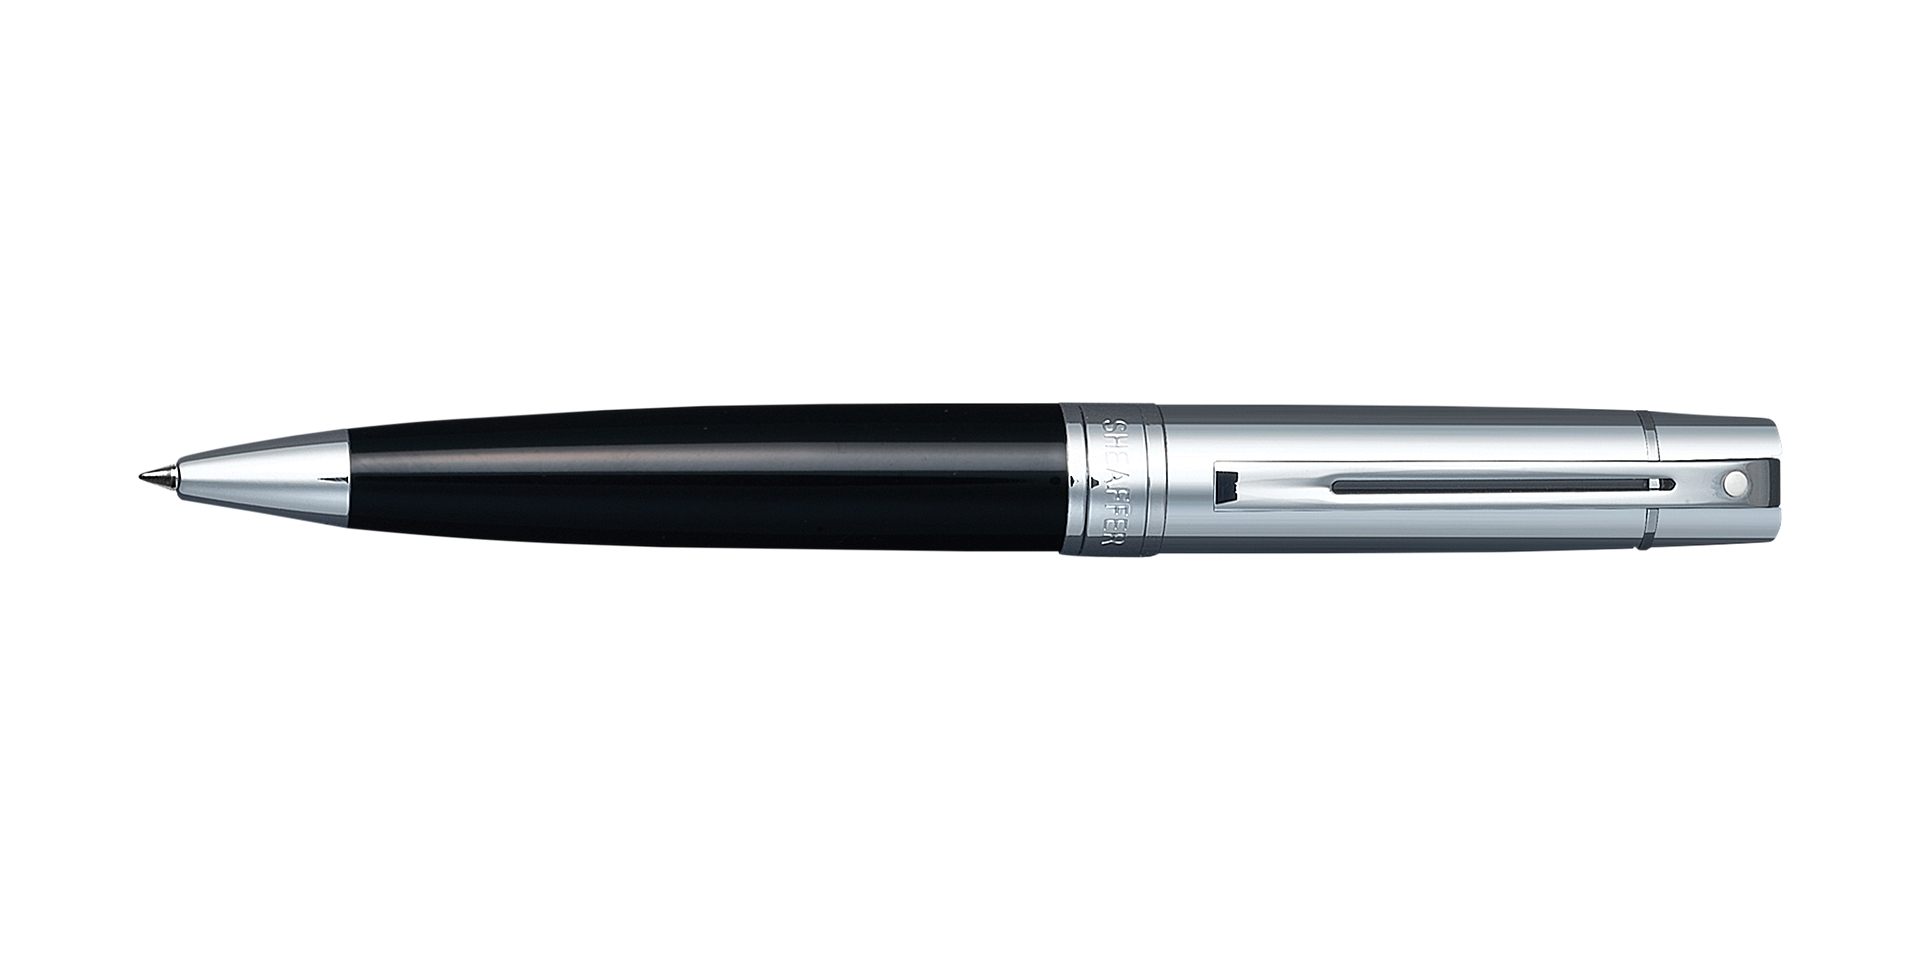 Sheaffer 300 Glossy Black Barrel with Bright Chrome Cap Ballpoint Pen